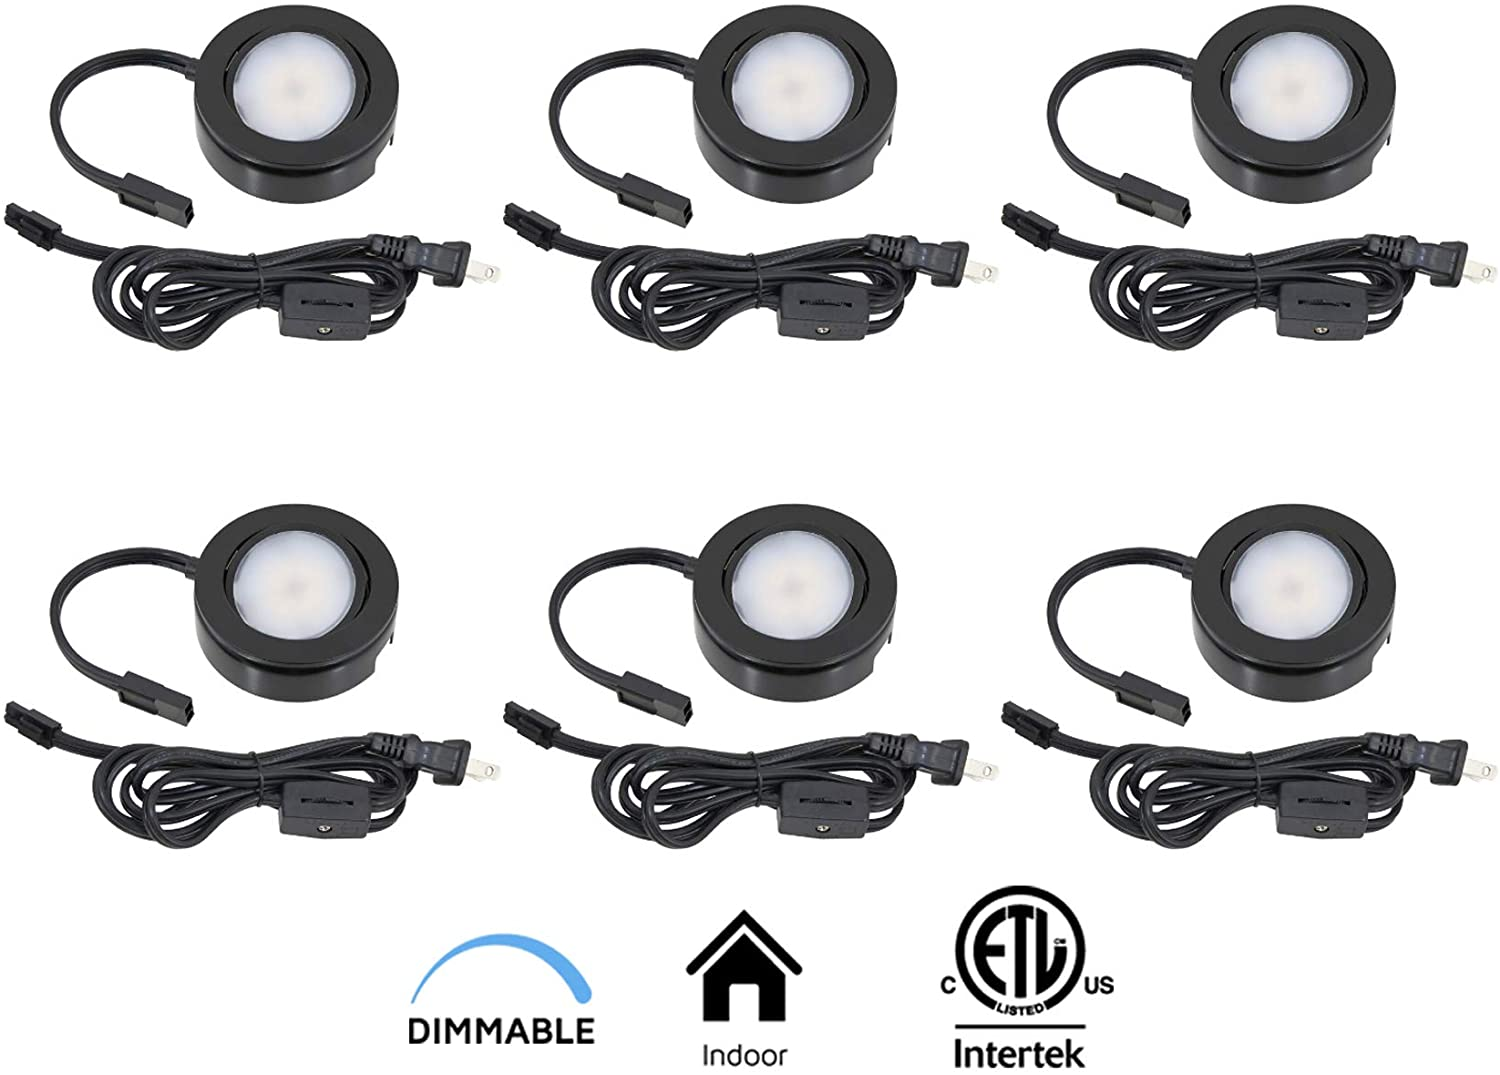 MVP Single Puck Kit with Roll Switch and 6 Foot Power Cord, 6-Inch Lead/Tail Wire and Hardware, Dimmable Swivel LED, cETLus Listed, 2-3/4-Inch, 3000K, Black, 6-Pack